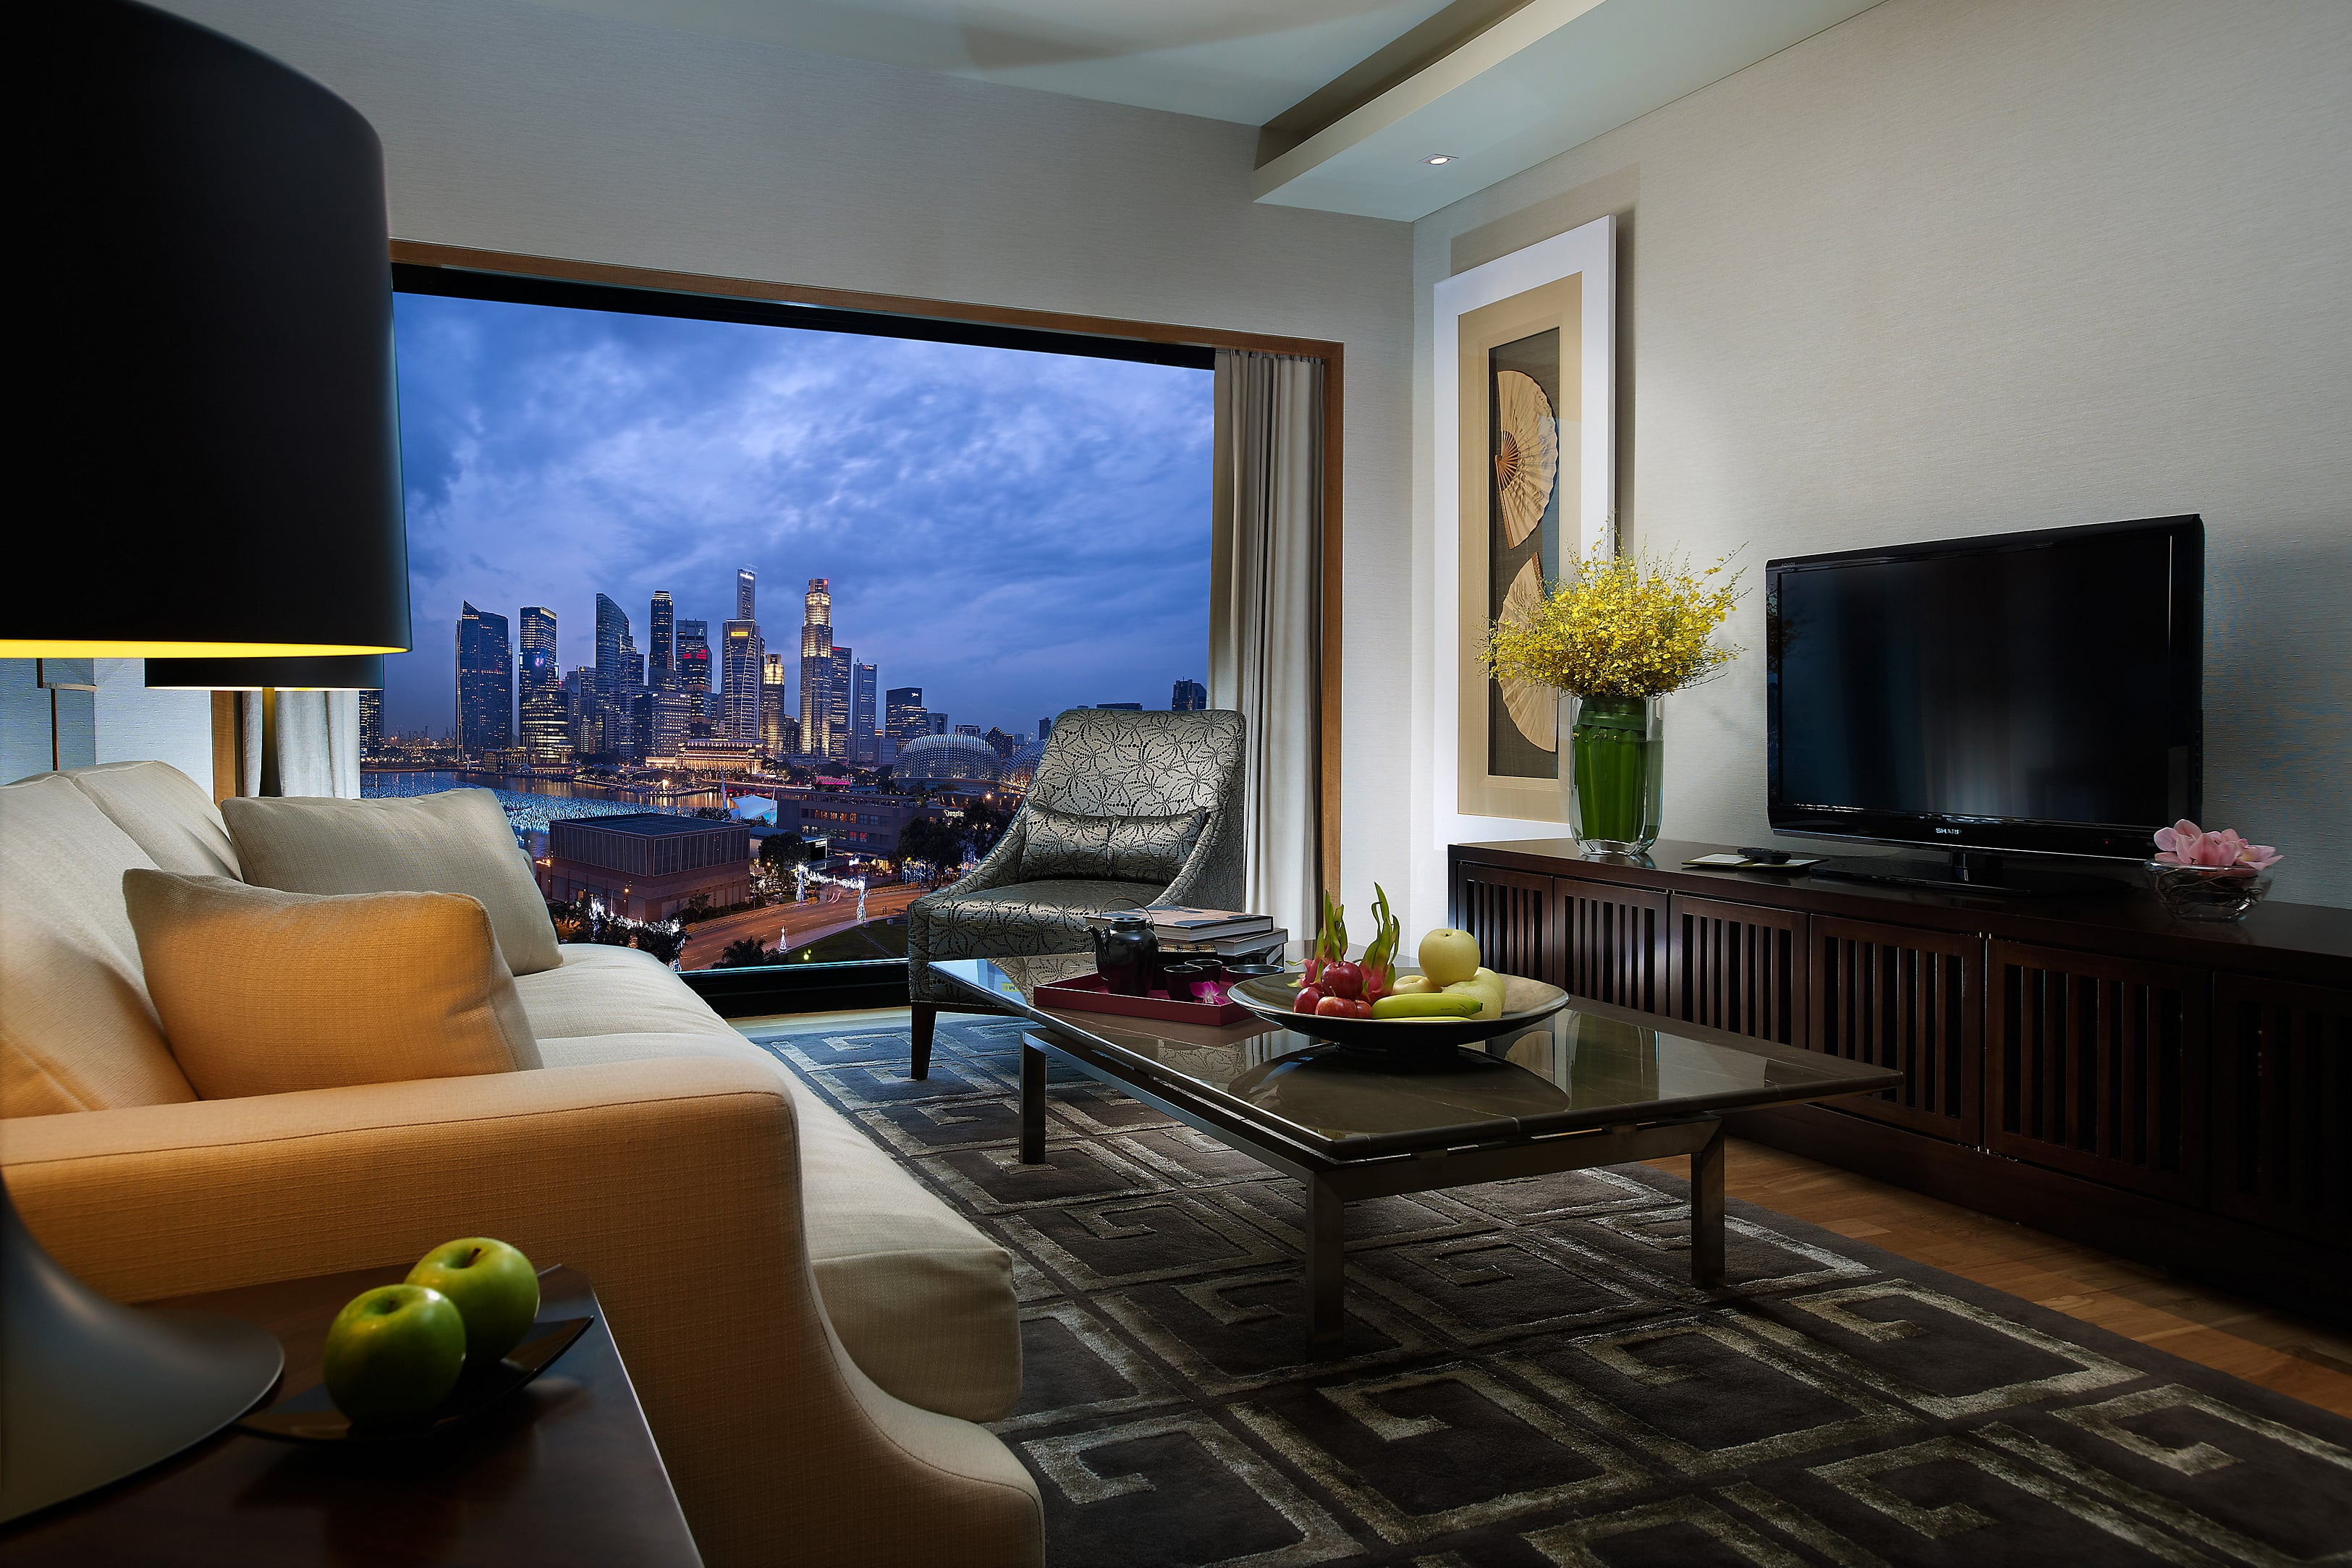 Singapore hotel photo gallery mandarin oriental hotel singapore - Beautifull rooms ...